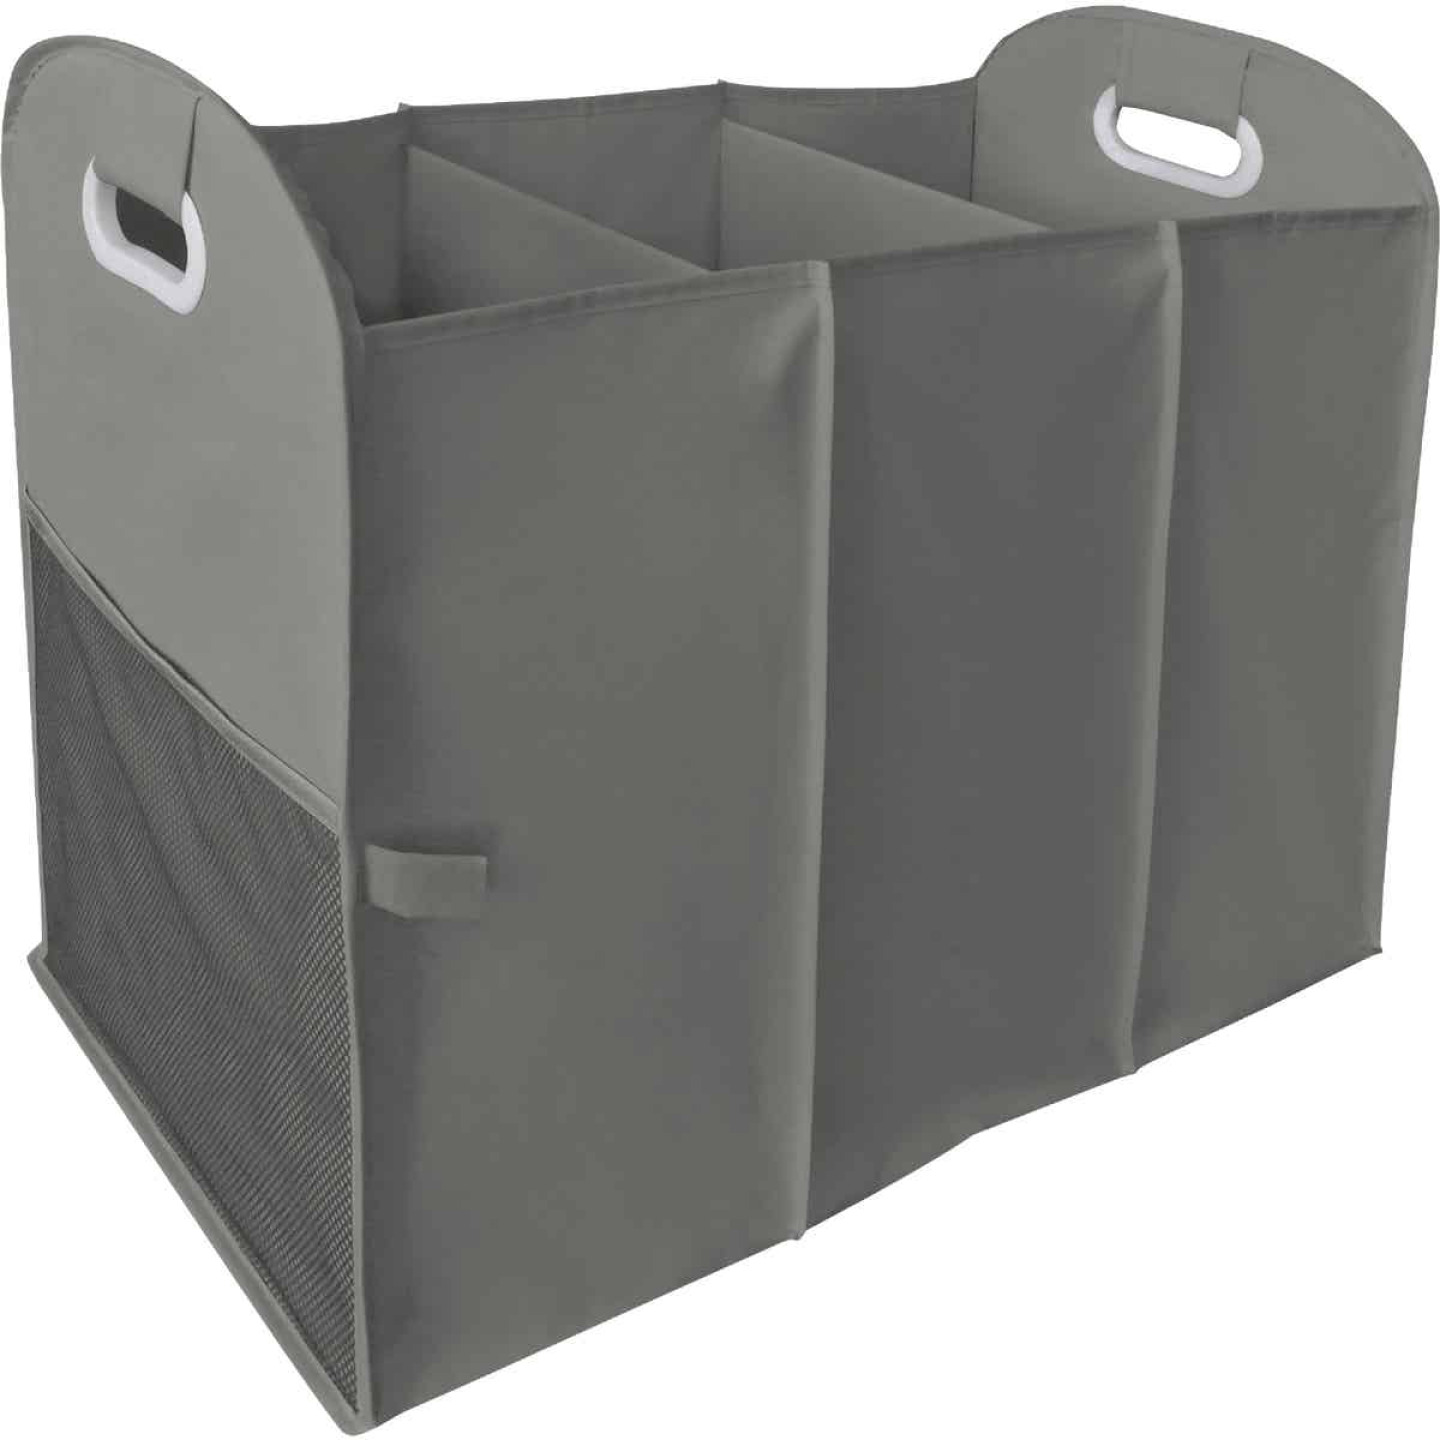 Homz Accordion Laundry Hamper Image 1